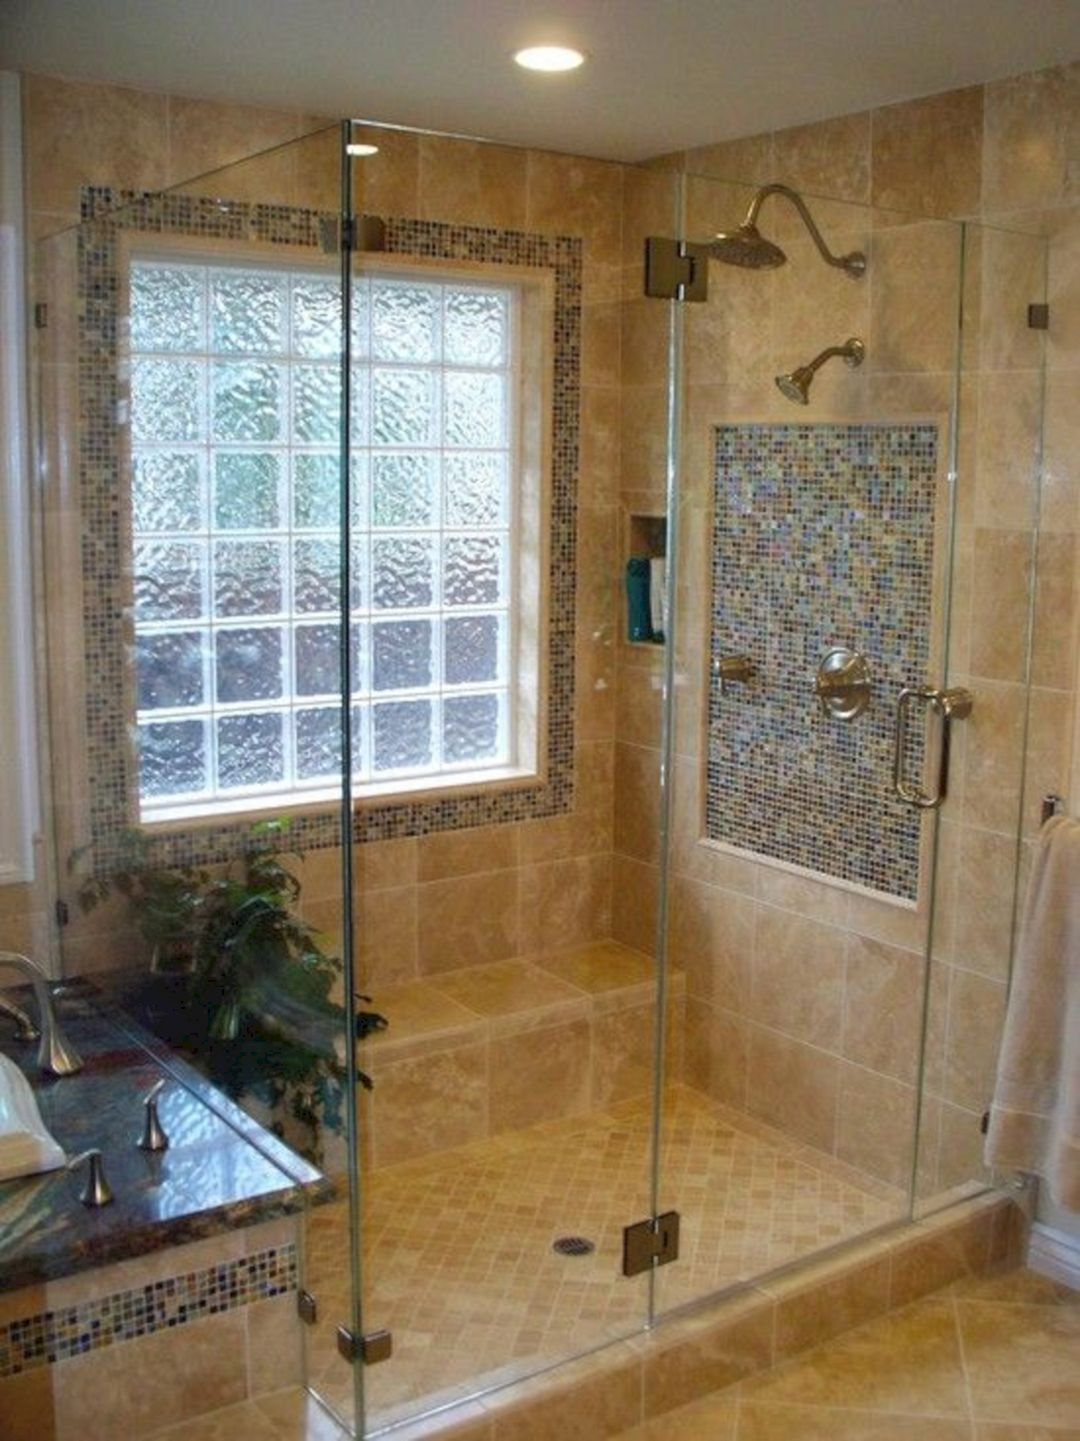 Top 45 Bathroom Window Design Ideas Bathroom Remodel Shower Window In Shower Small Bathroom Remodel